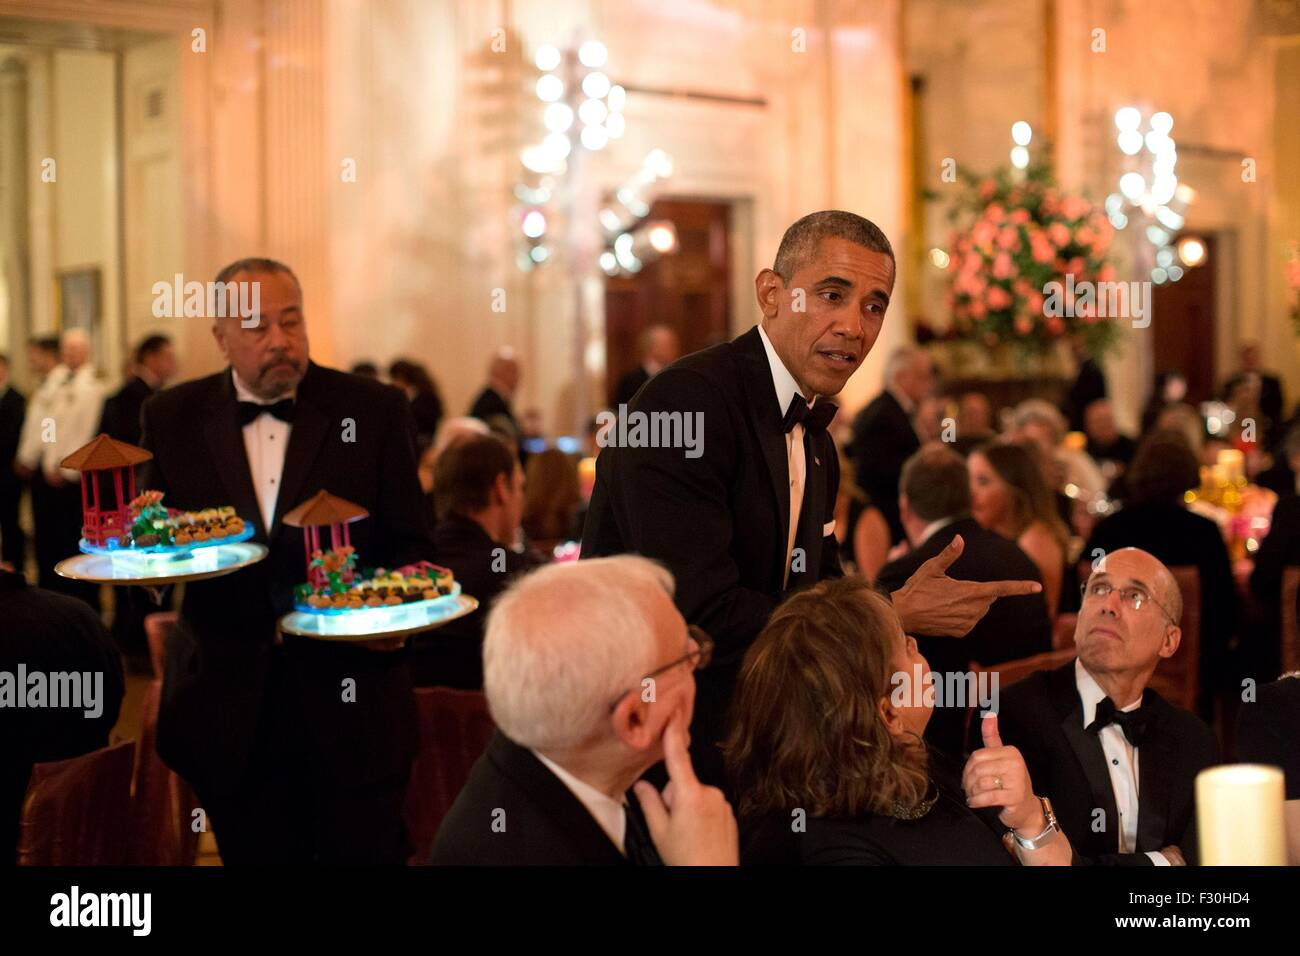 Washington DC, US. 25th Sep, 2015. U.S. President Barack Obama talks with guests during the State Dinner for Chinese Stock Photo